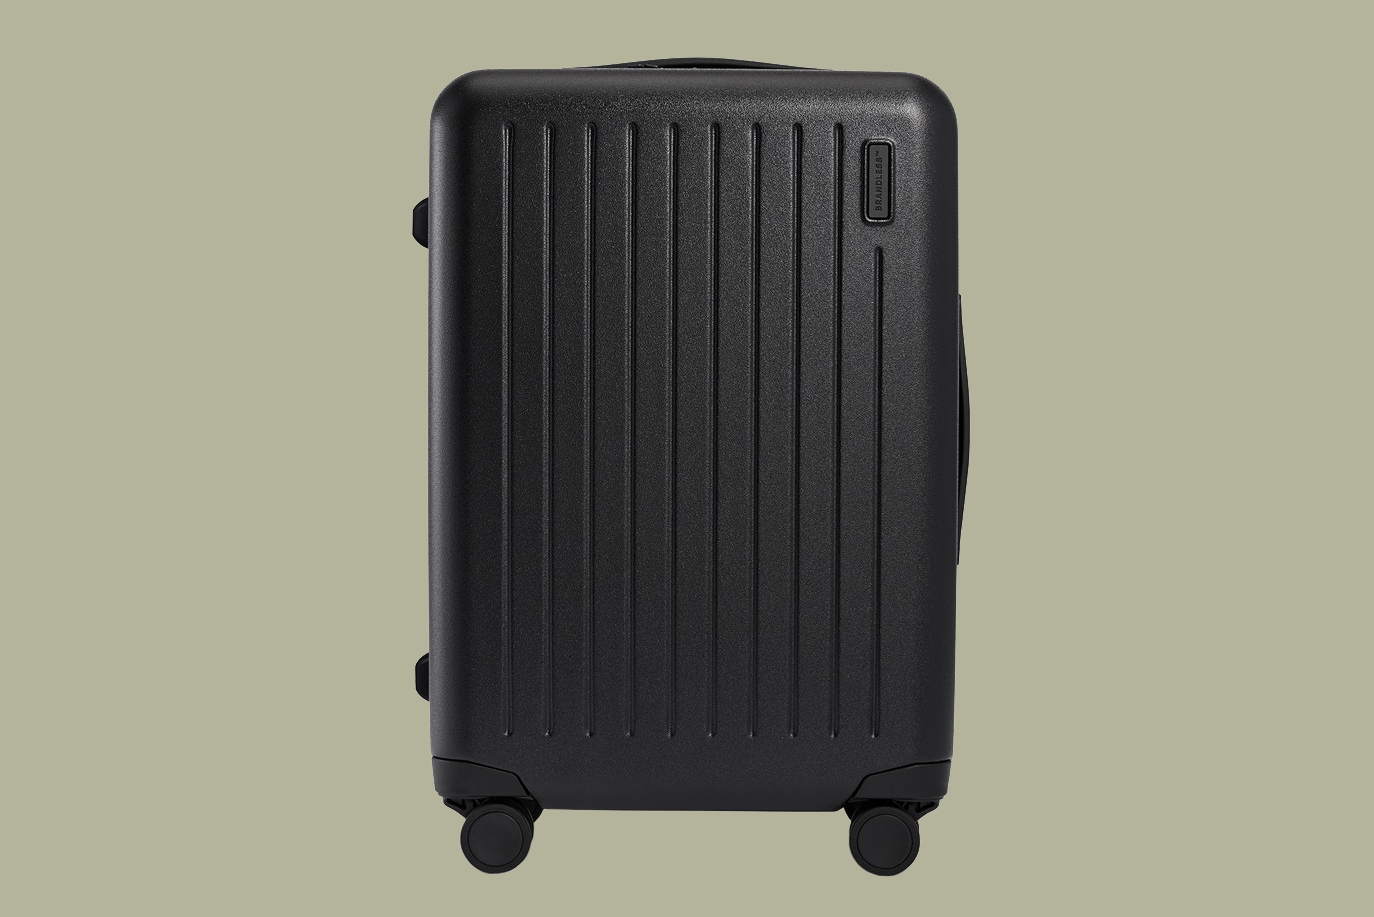 Brandless Carry On Luggage